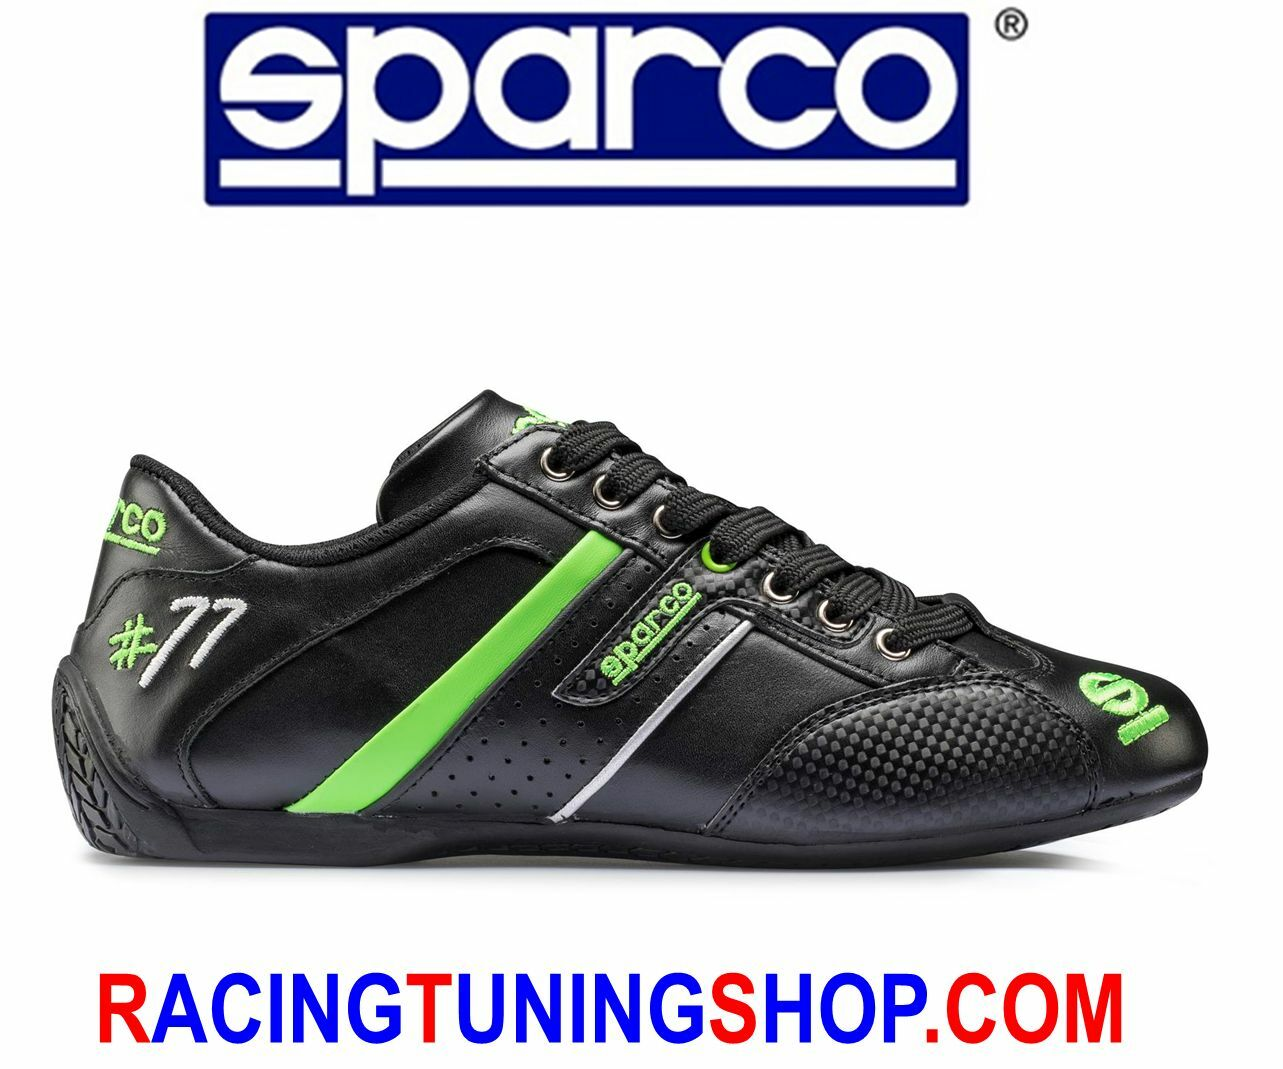 SPARCO SHOES TIME 77 SNEAKERS SCHUHE BLACK GREEN SIZE 44